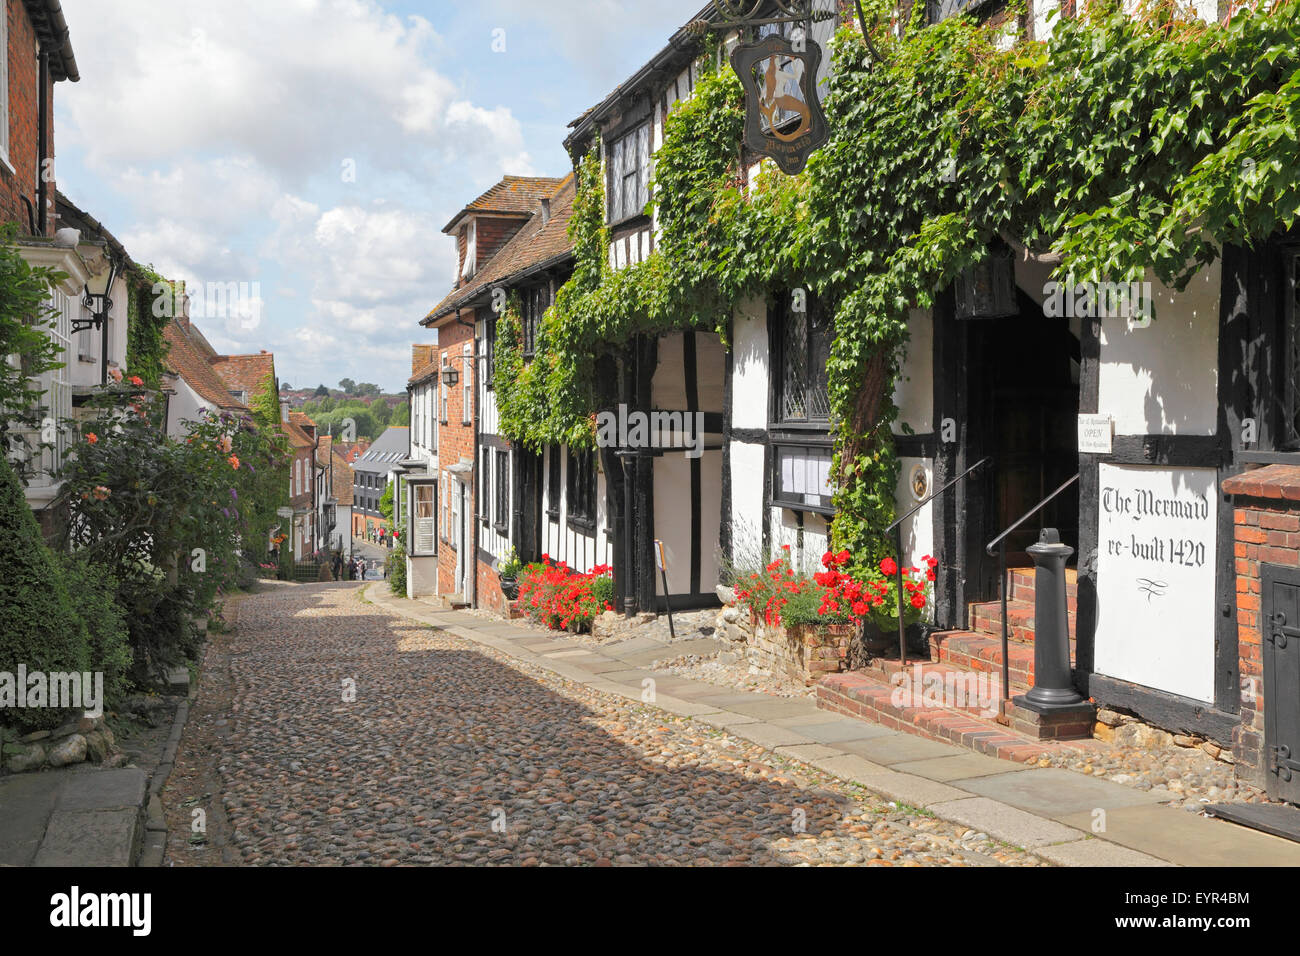 The picturesque quaint cobbled Mermaid Street, in the historic Cinque Ports town of Rye, East Sussex, England, UK - Stock Image